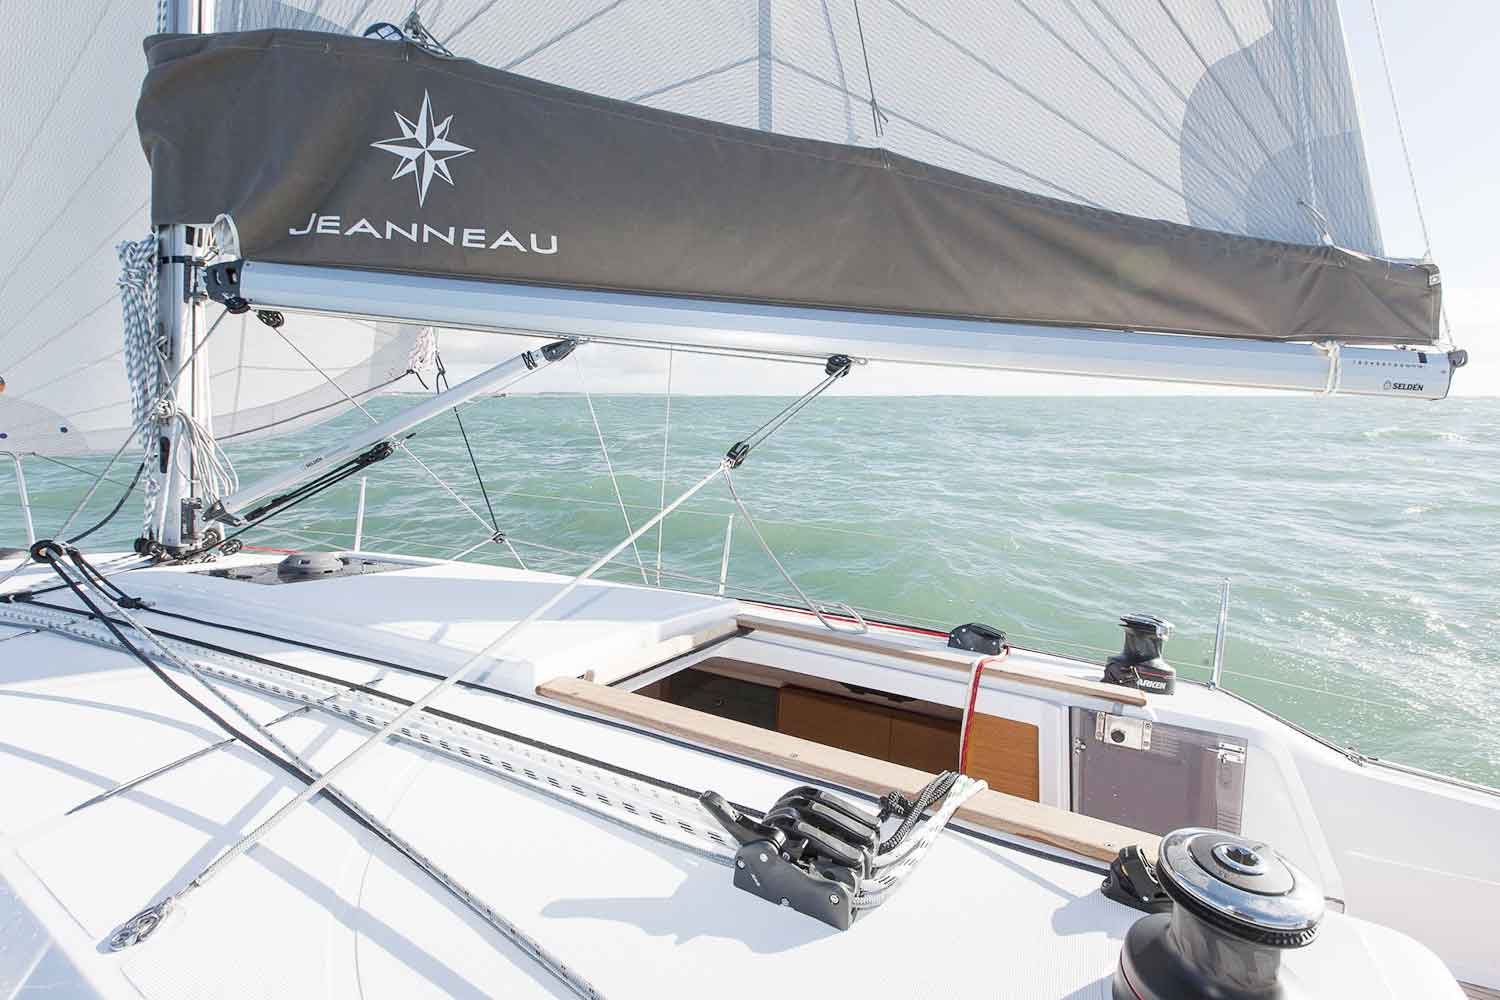 Jeanneau Sun Odyssey 349 Review, Sailing Yacht Charters in Cyprus with Latchi Charters Cyprus